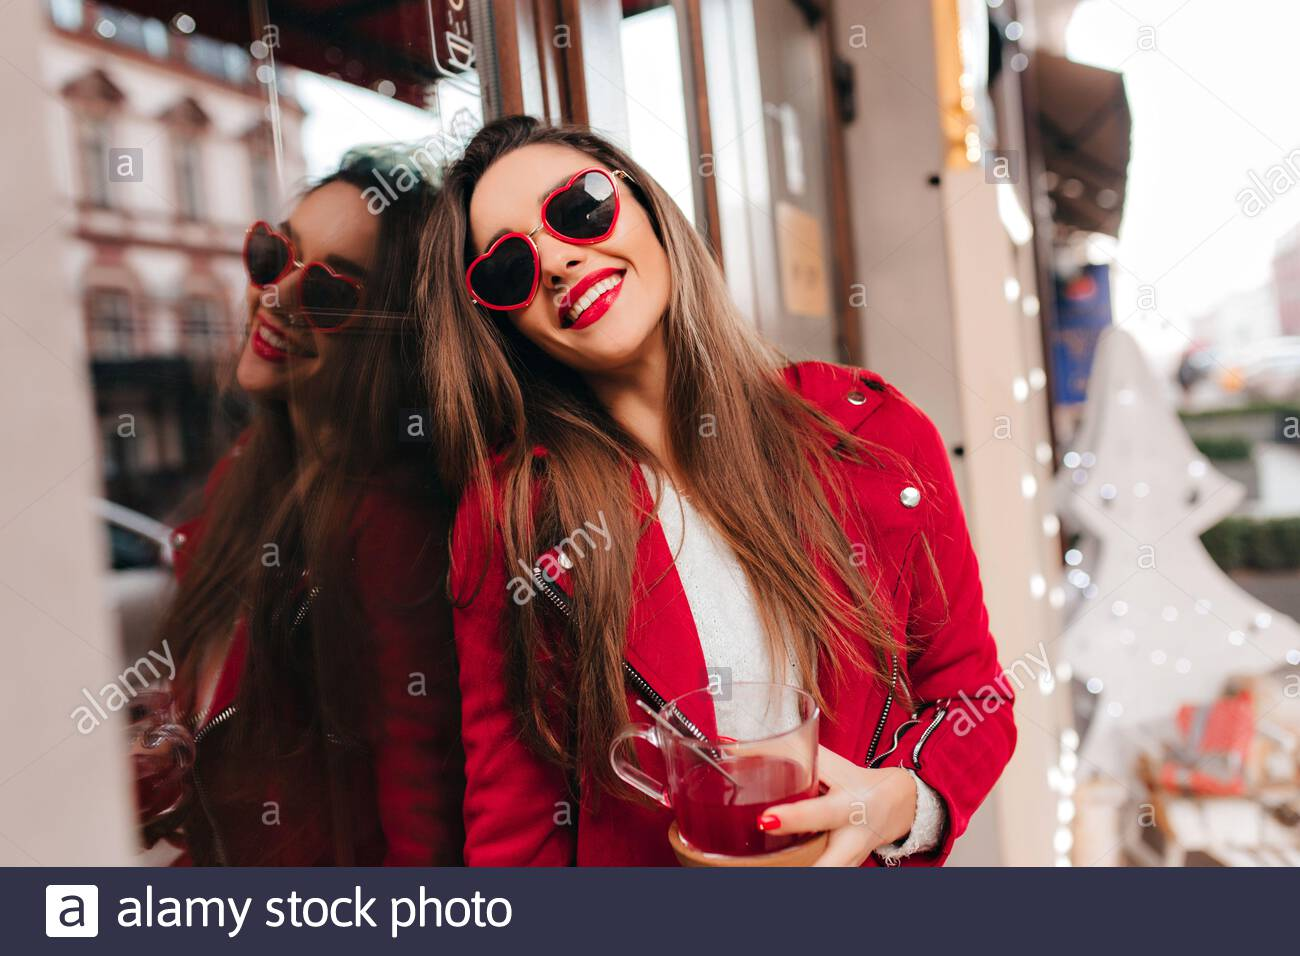 Cafe Photoshoot High Resolution Stock Photography And Images Alamy